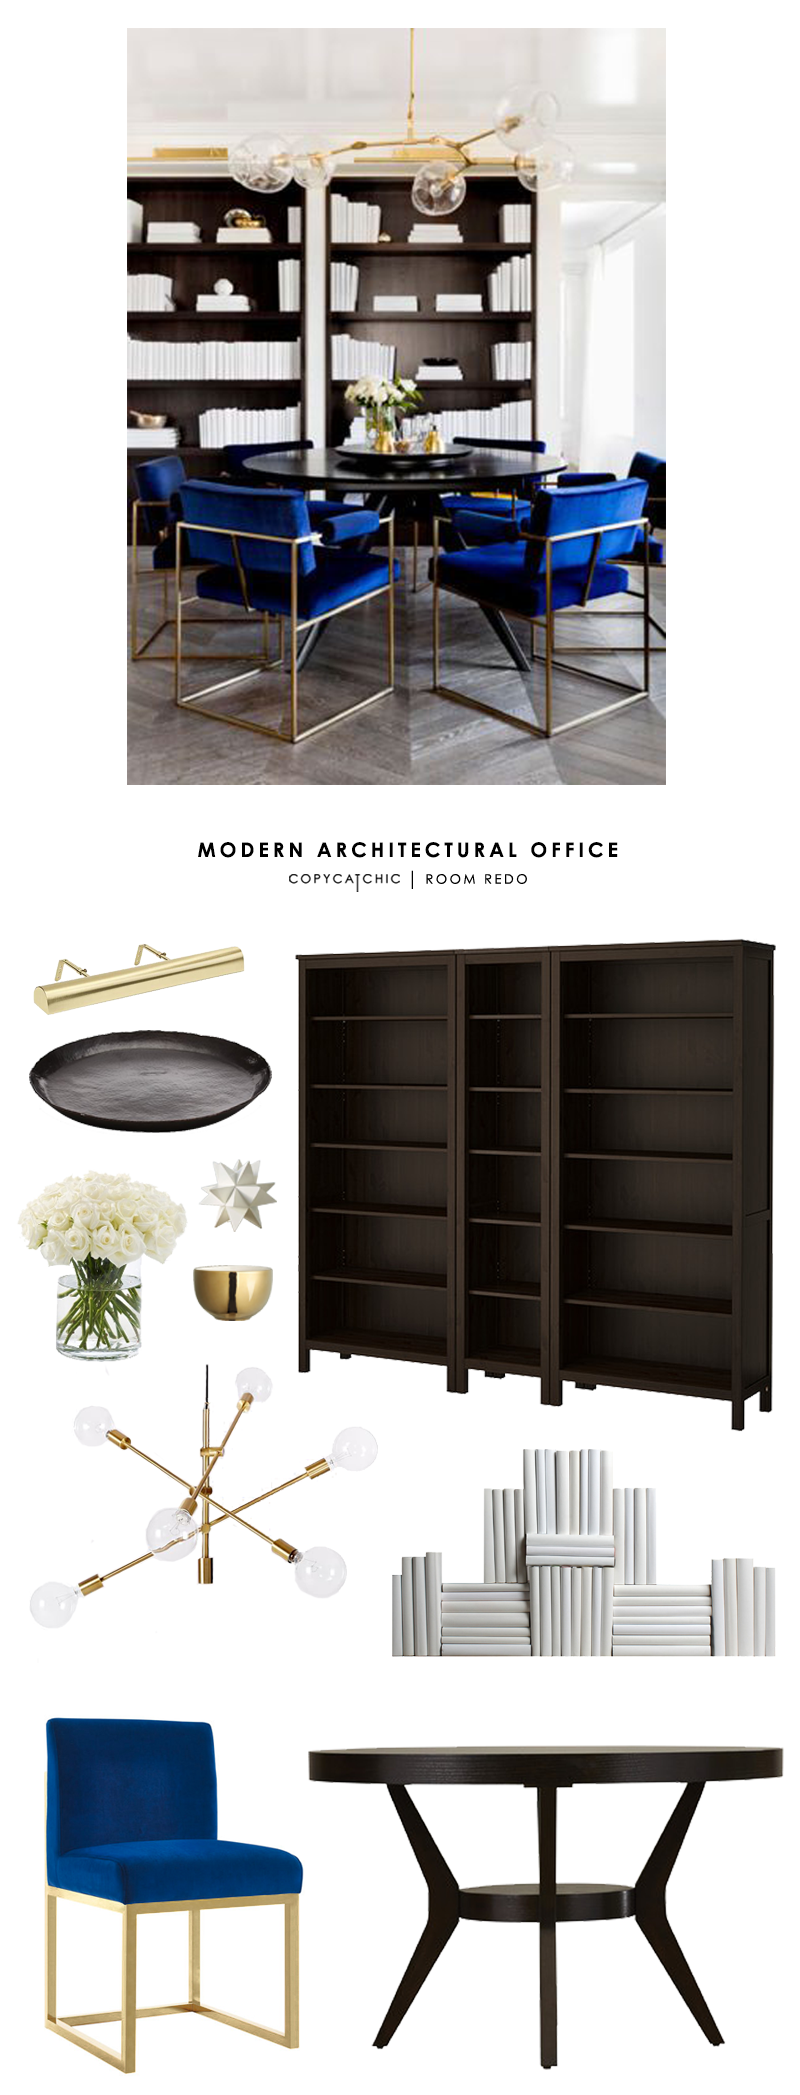 A modern office designed by Tamara Magel gets recreated for less by @copycatchic | budget home decor and design looks for less room redo chic finds